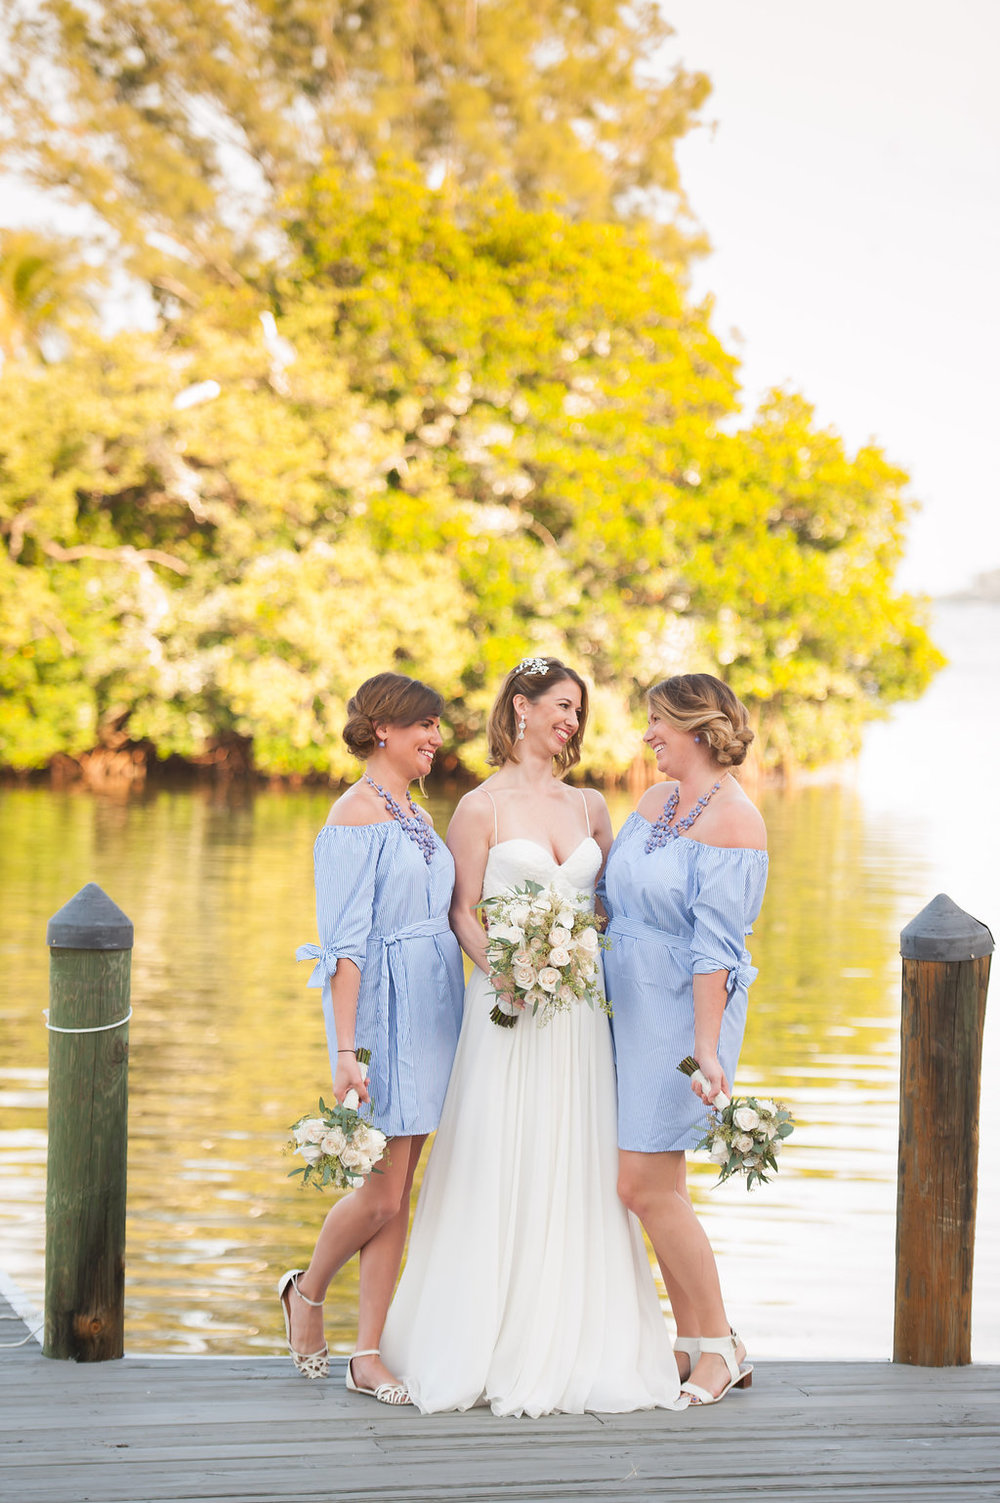 The bridesmaids wore short, striped dresses to incorporate a fun and relaxed searsucker vibe.